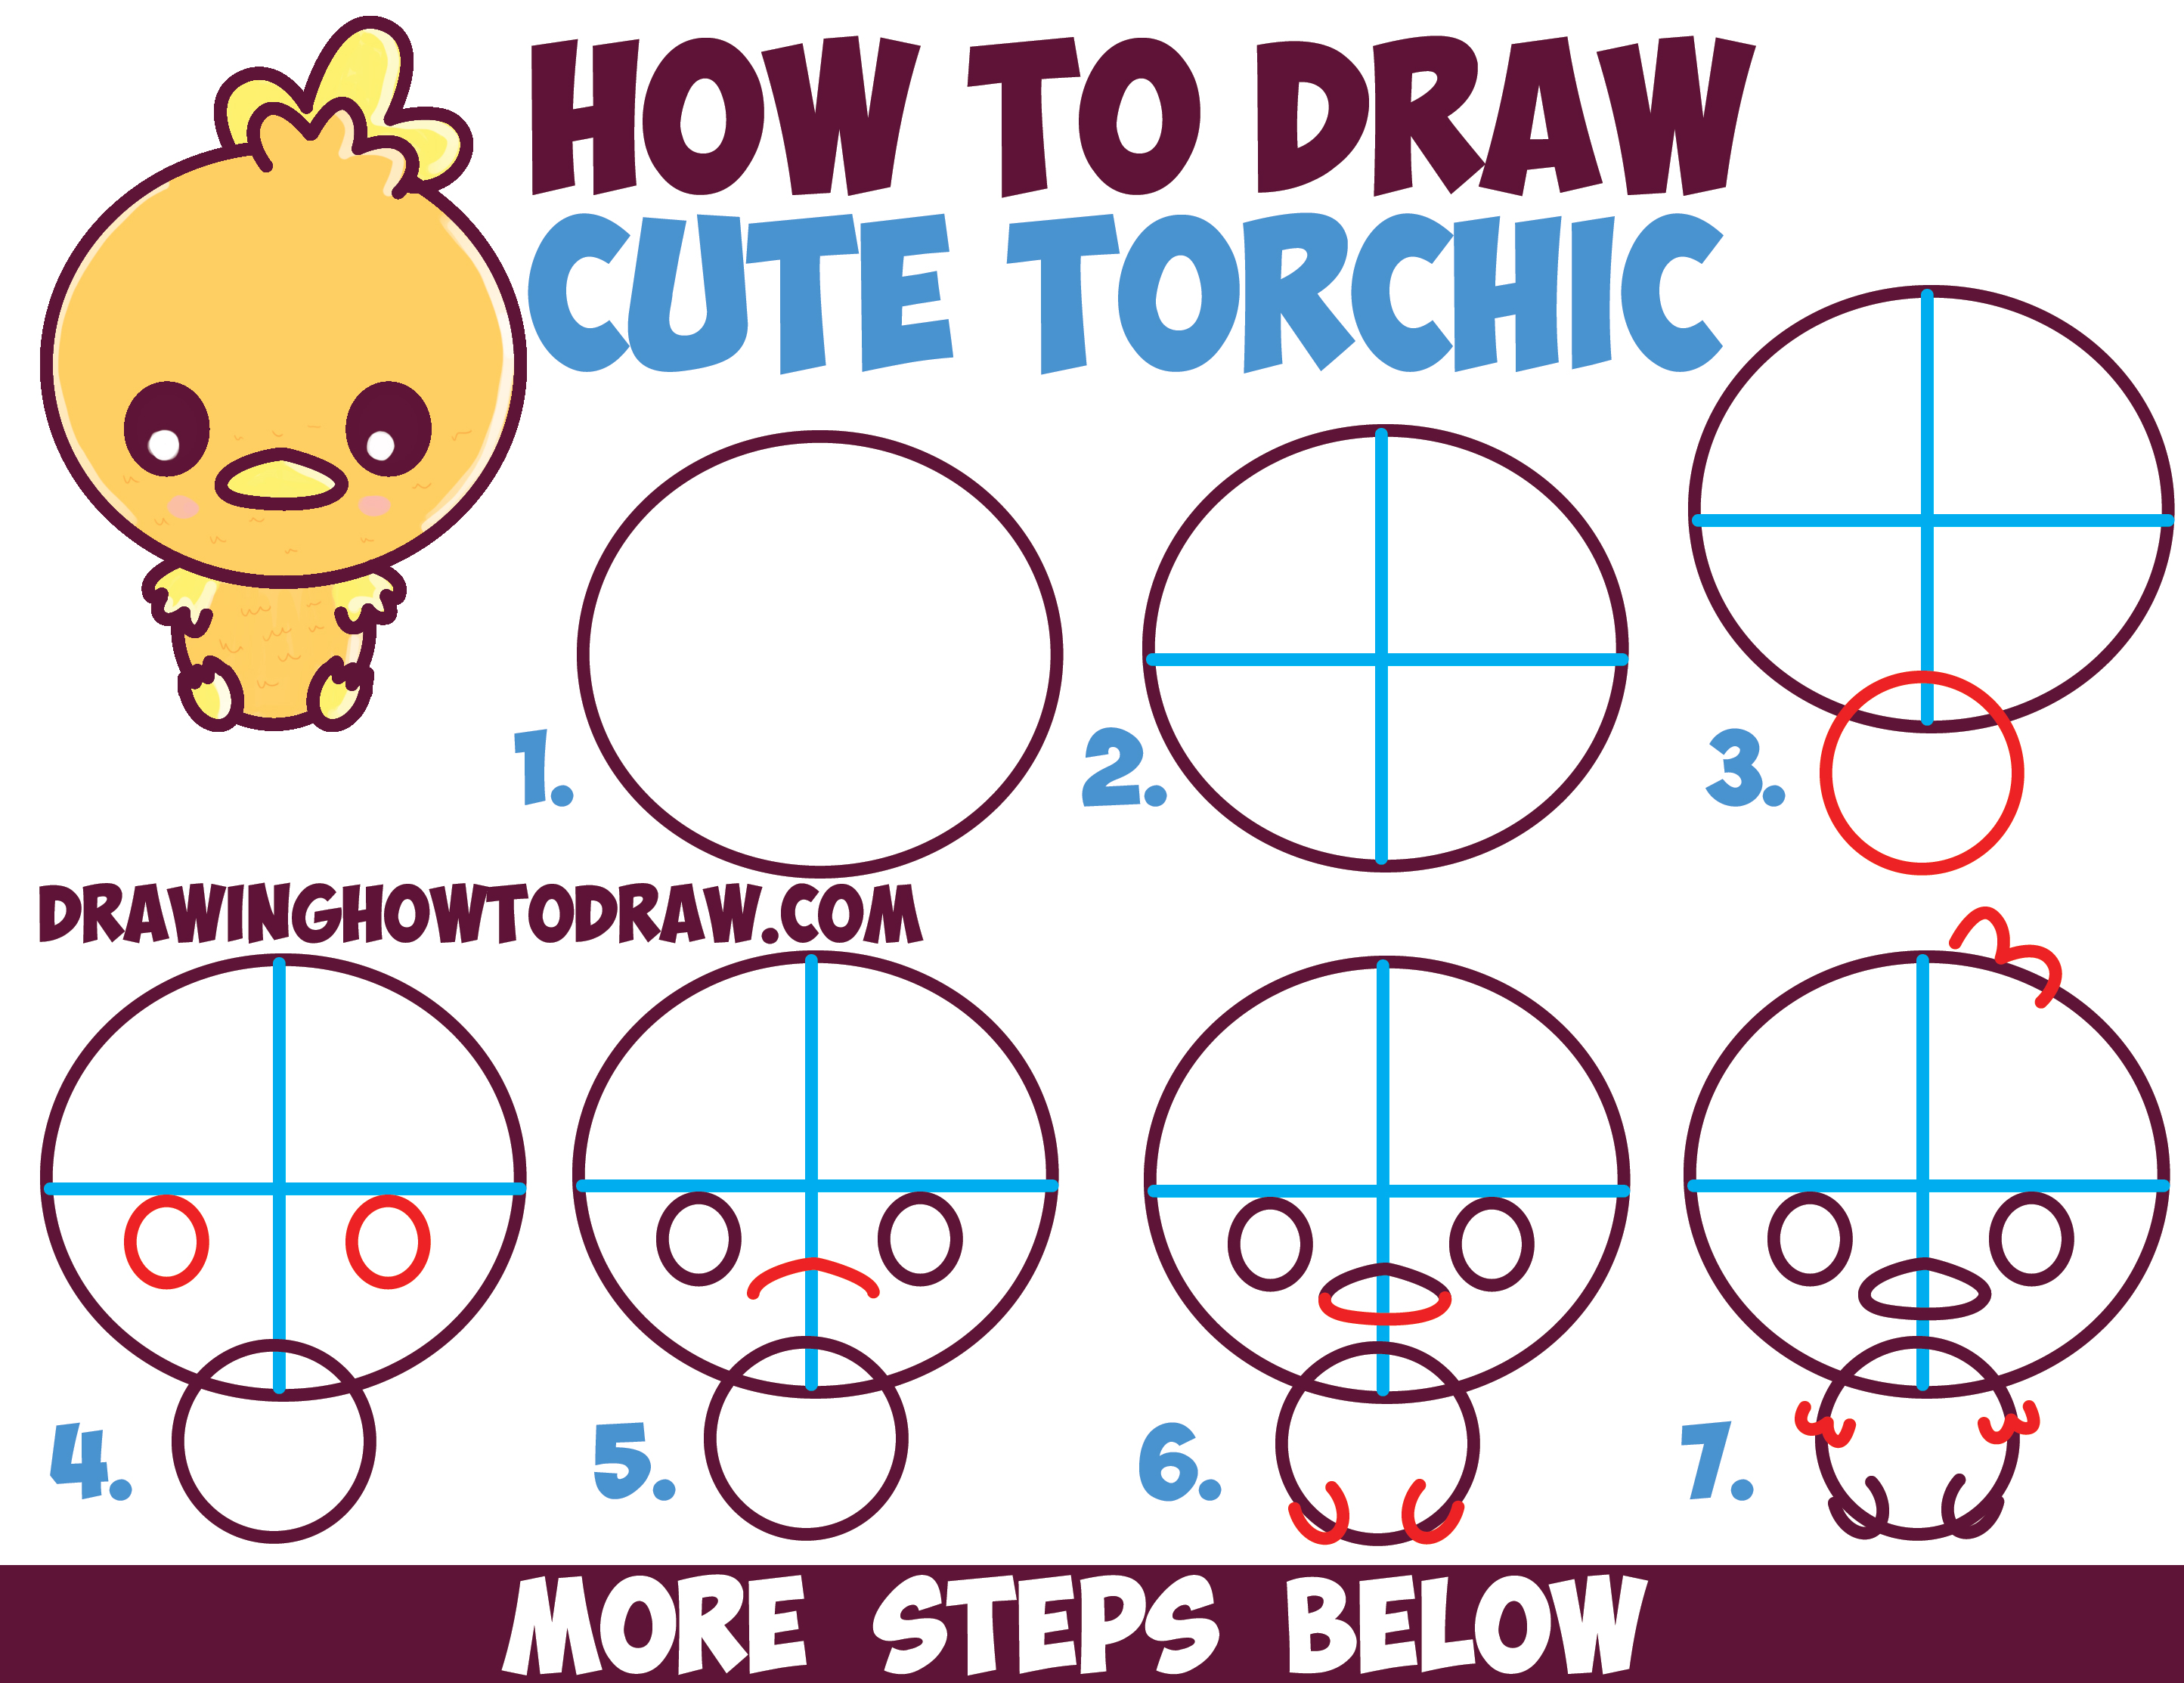 Torchic and mudkip drawings pokemon images pokemon images for Free online drawing lessons step by step